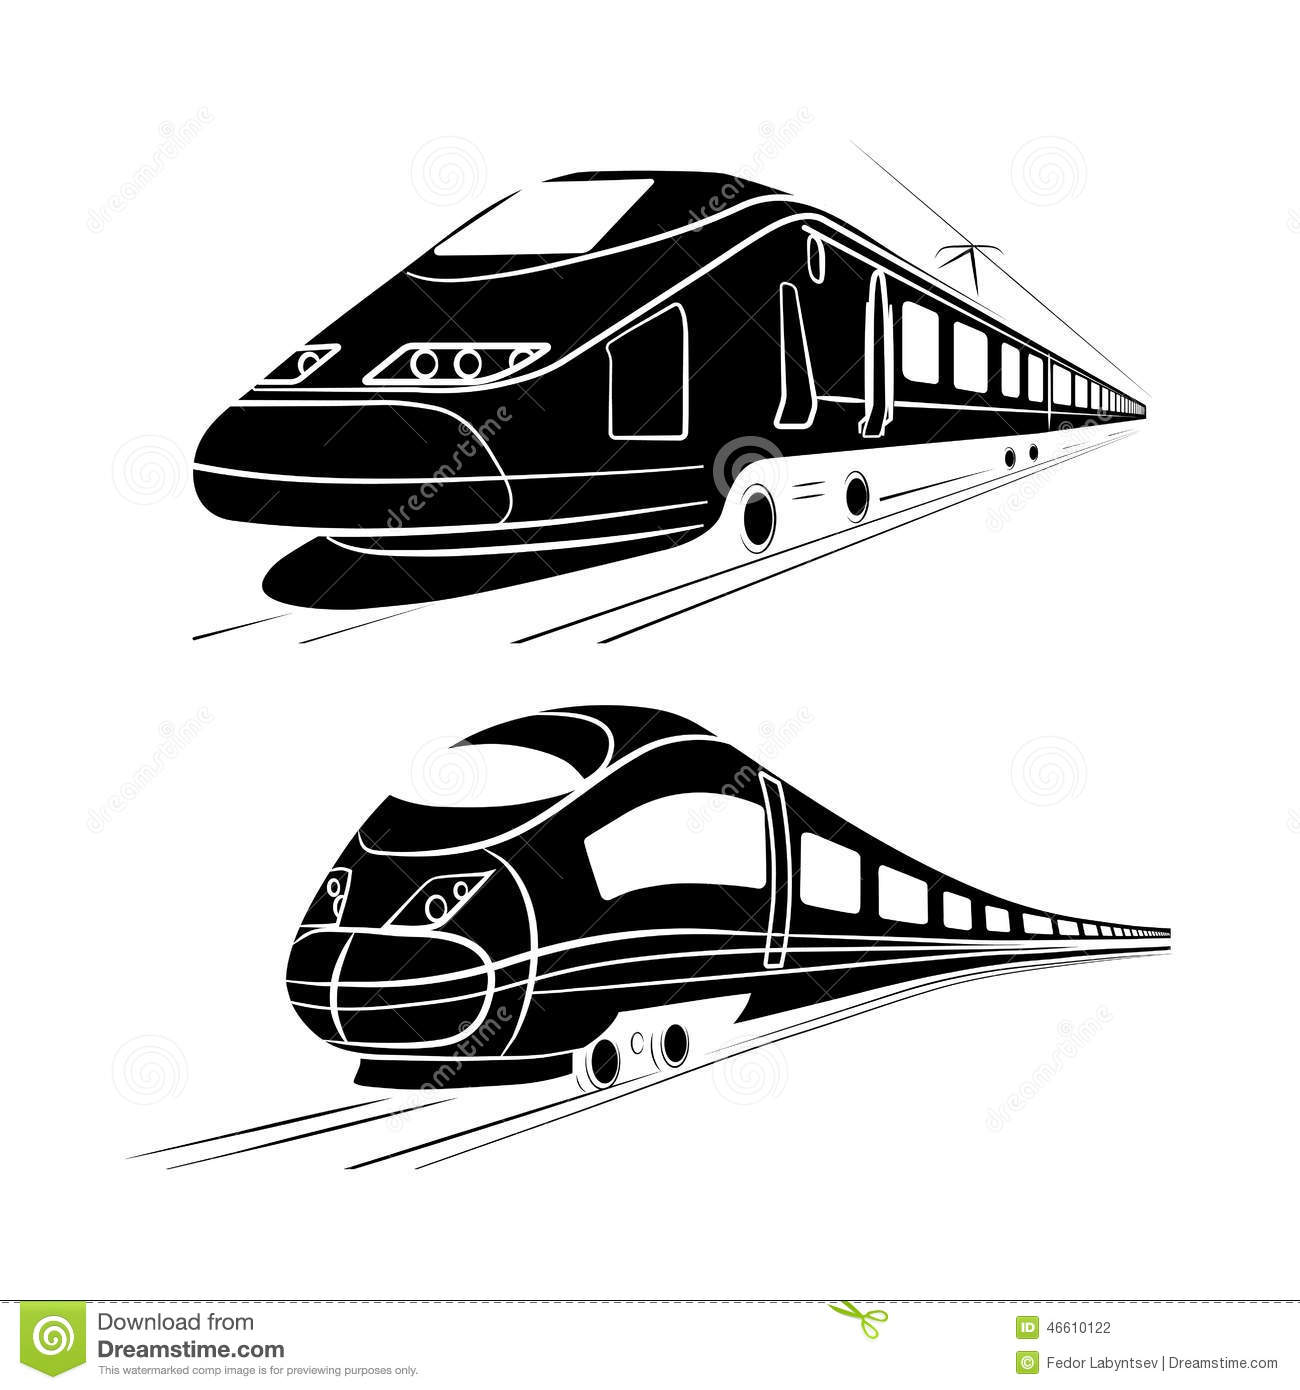 Monochrome Silhouette Of The High-speed Passenger Train ...